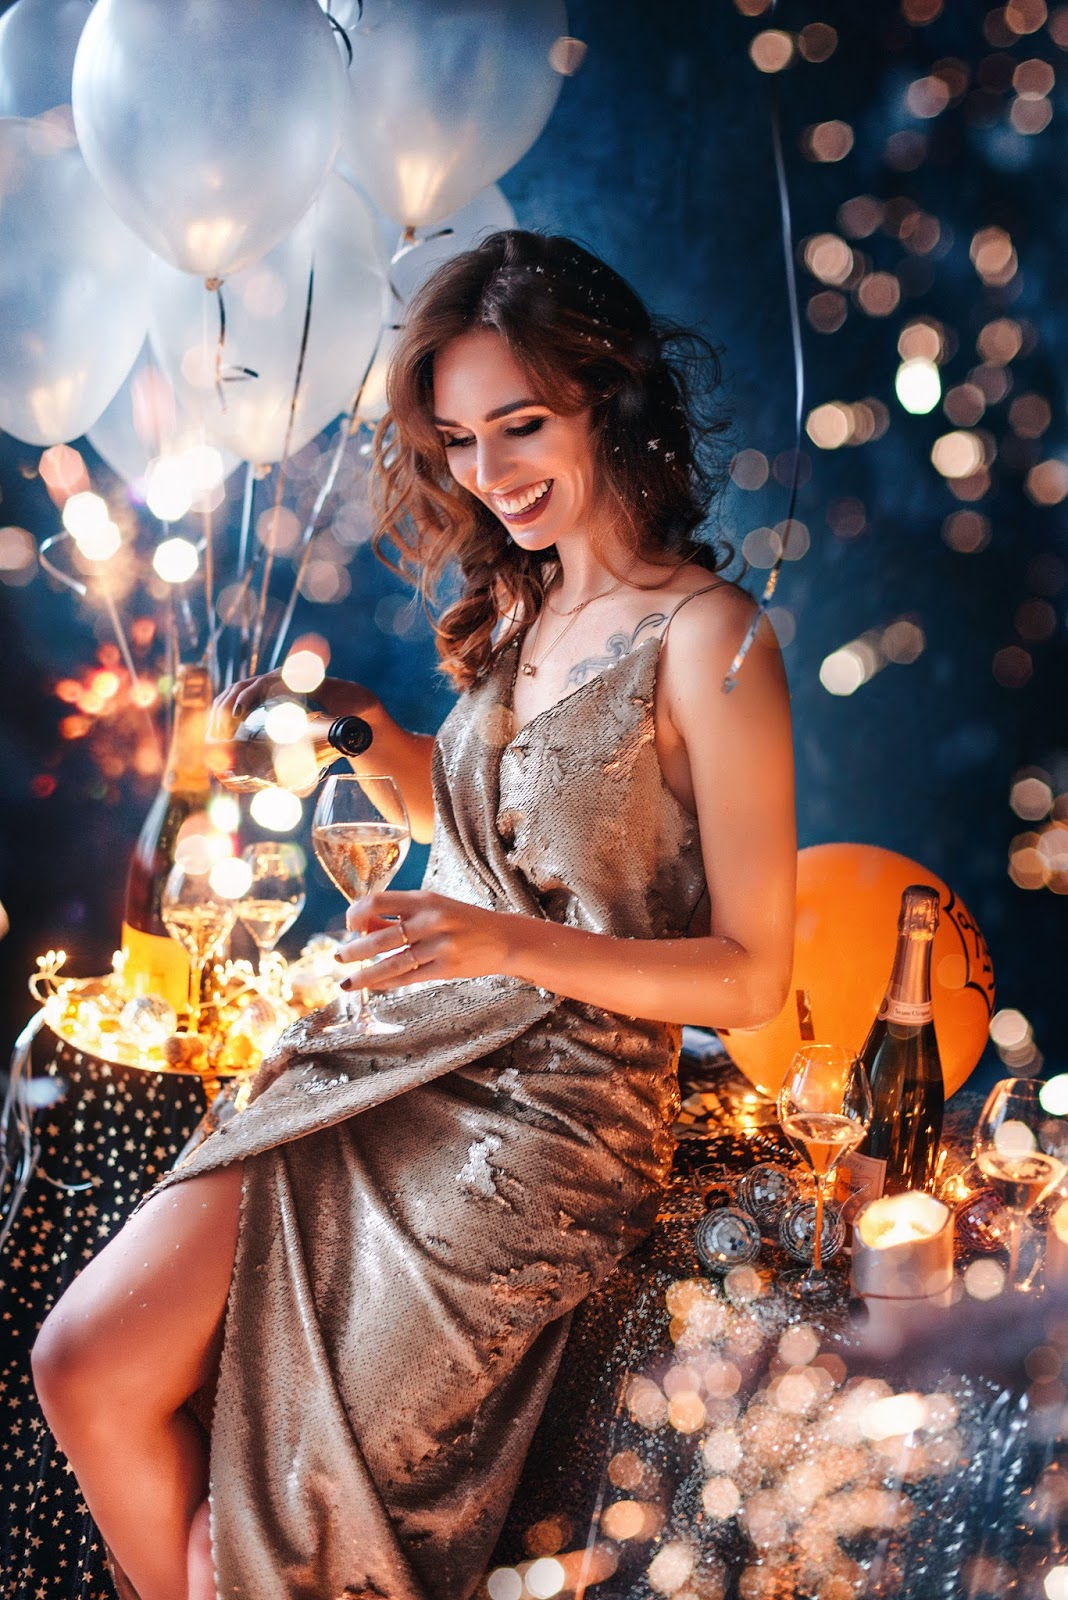 veuve clicquot champagne balloons confetty photoshoot